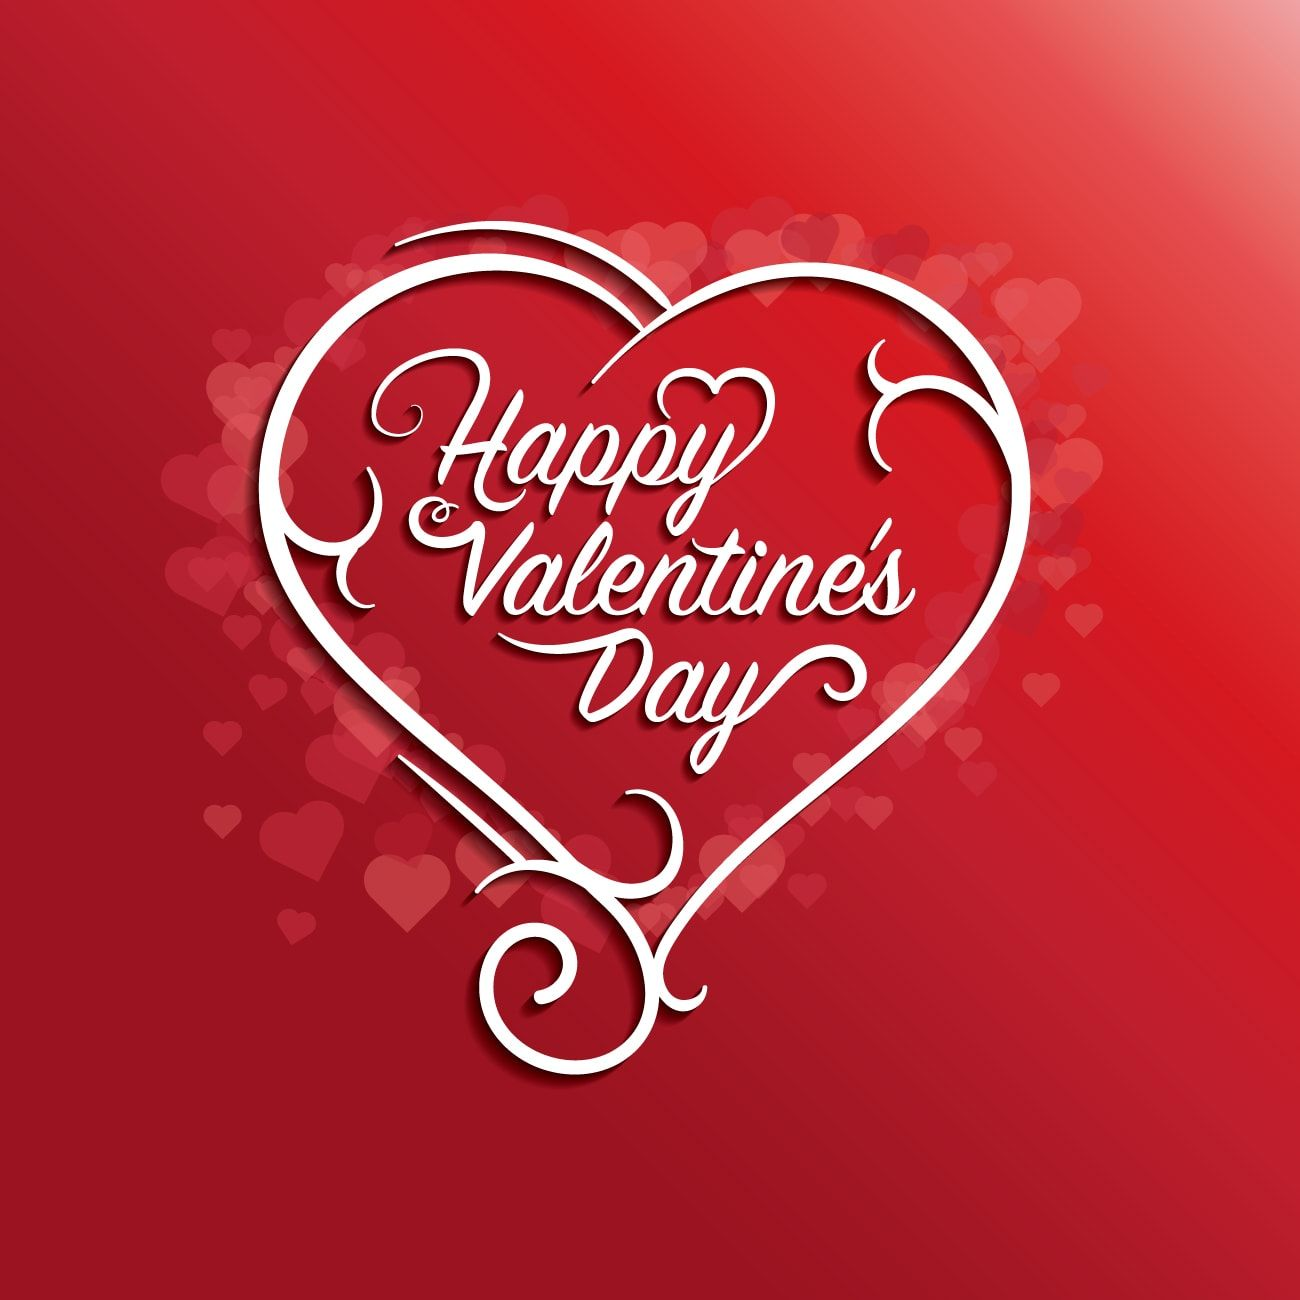 Happy Valentines Day 2017 Hd Wallpapers Download Facebook Cover